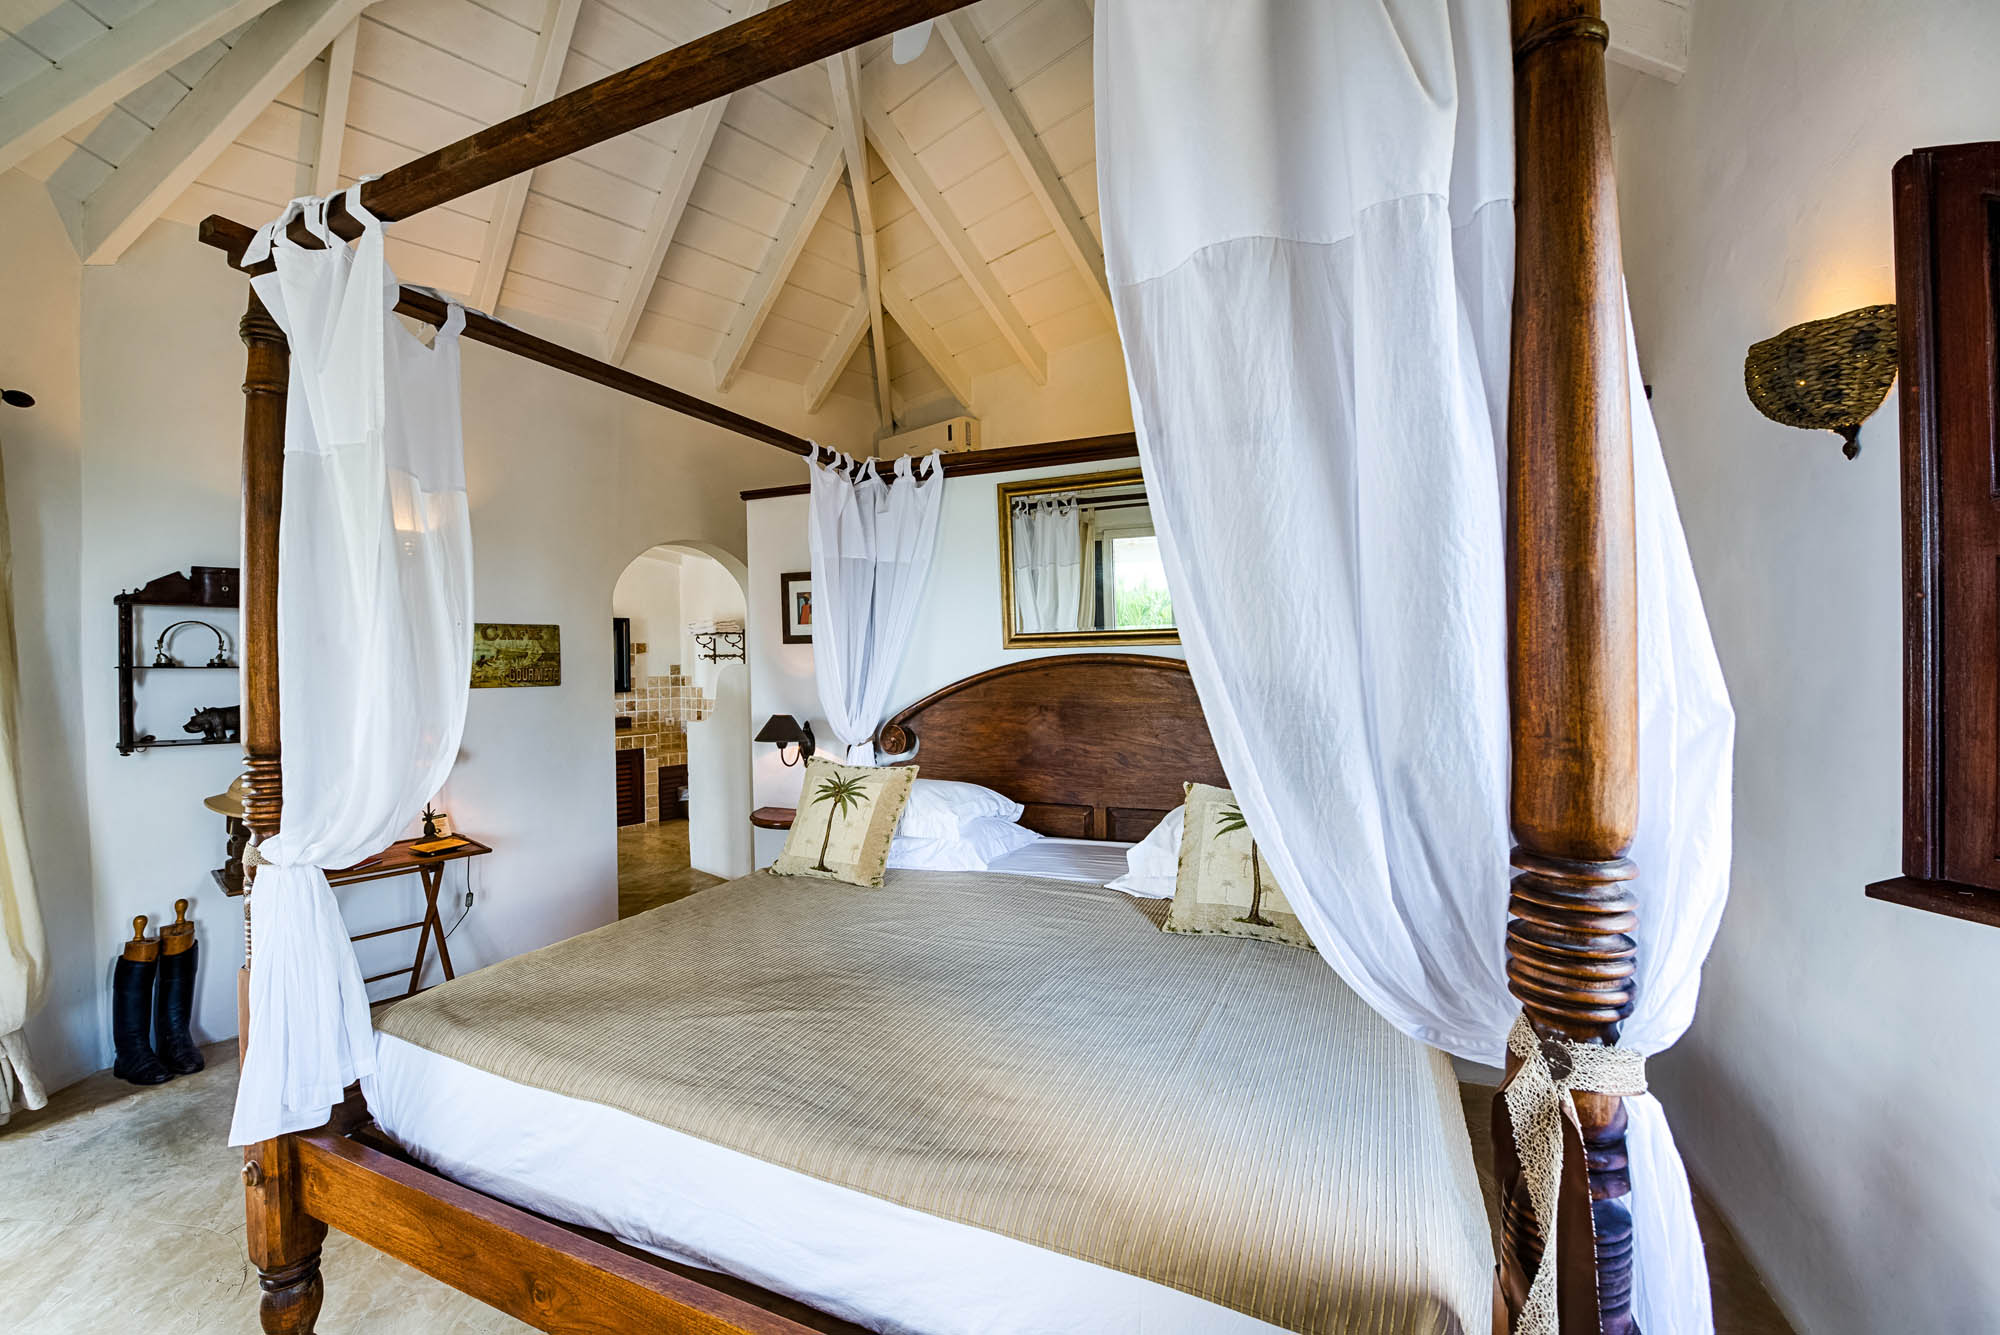 Each of the large bedrooms of this St. Martin villa rental has a king sized bed.